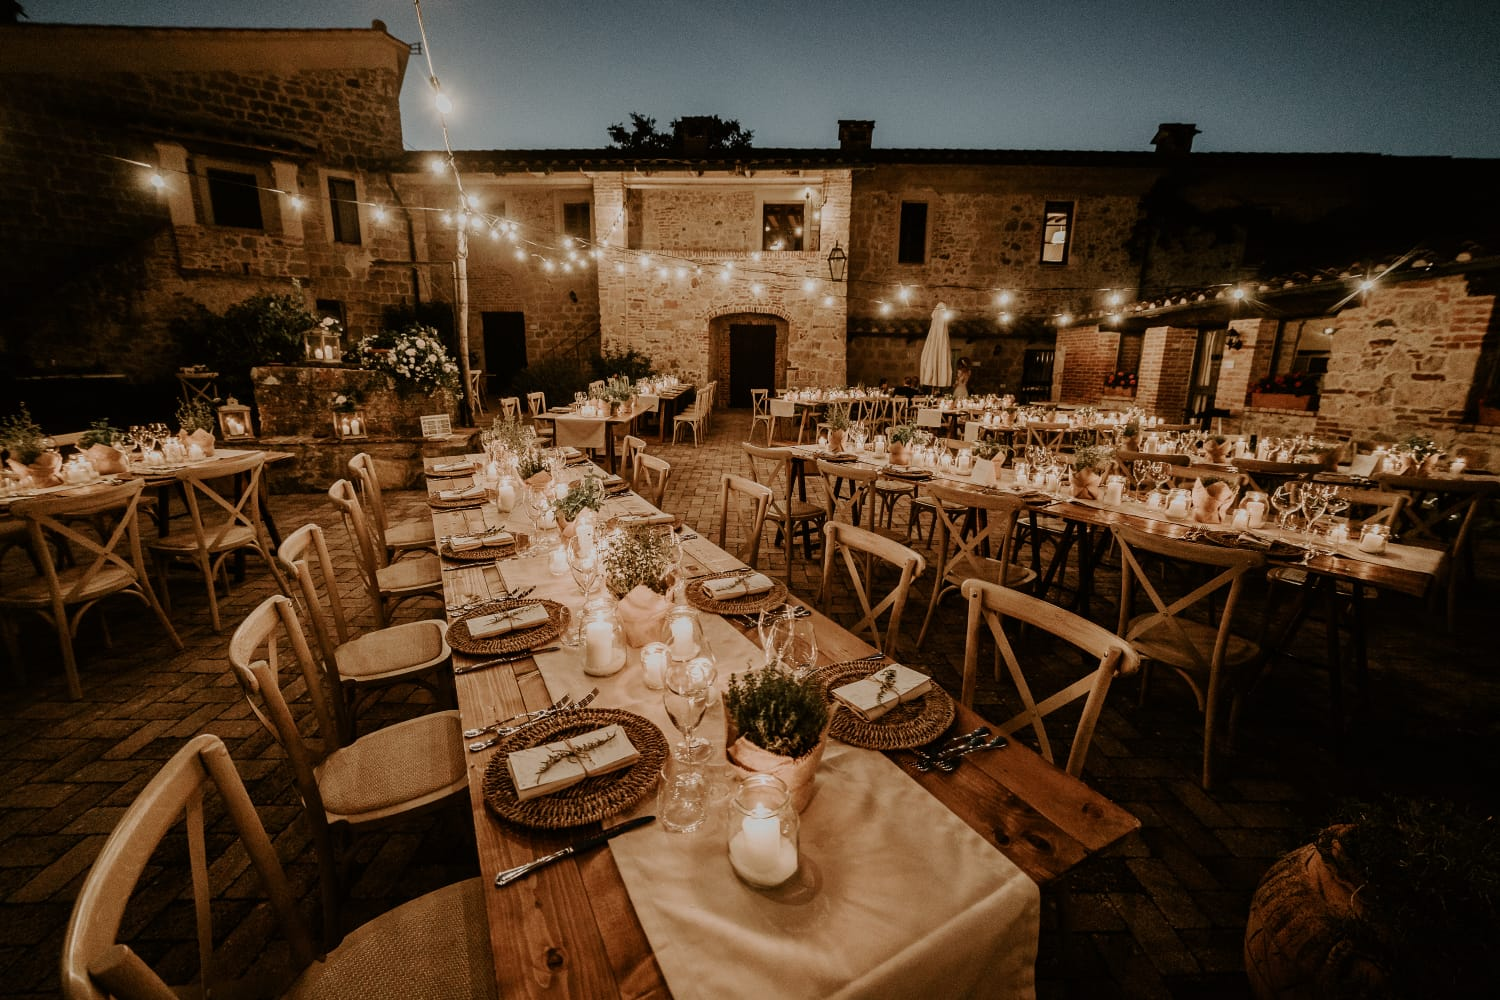 Rustic outdoor wedding in Tuscany